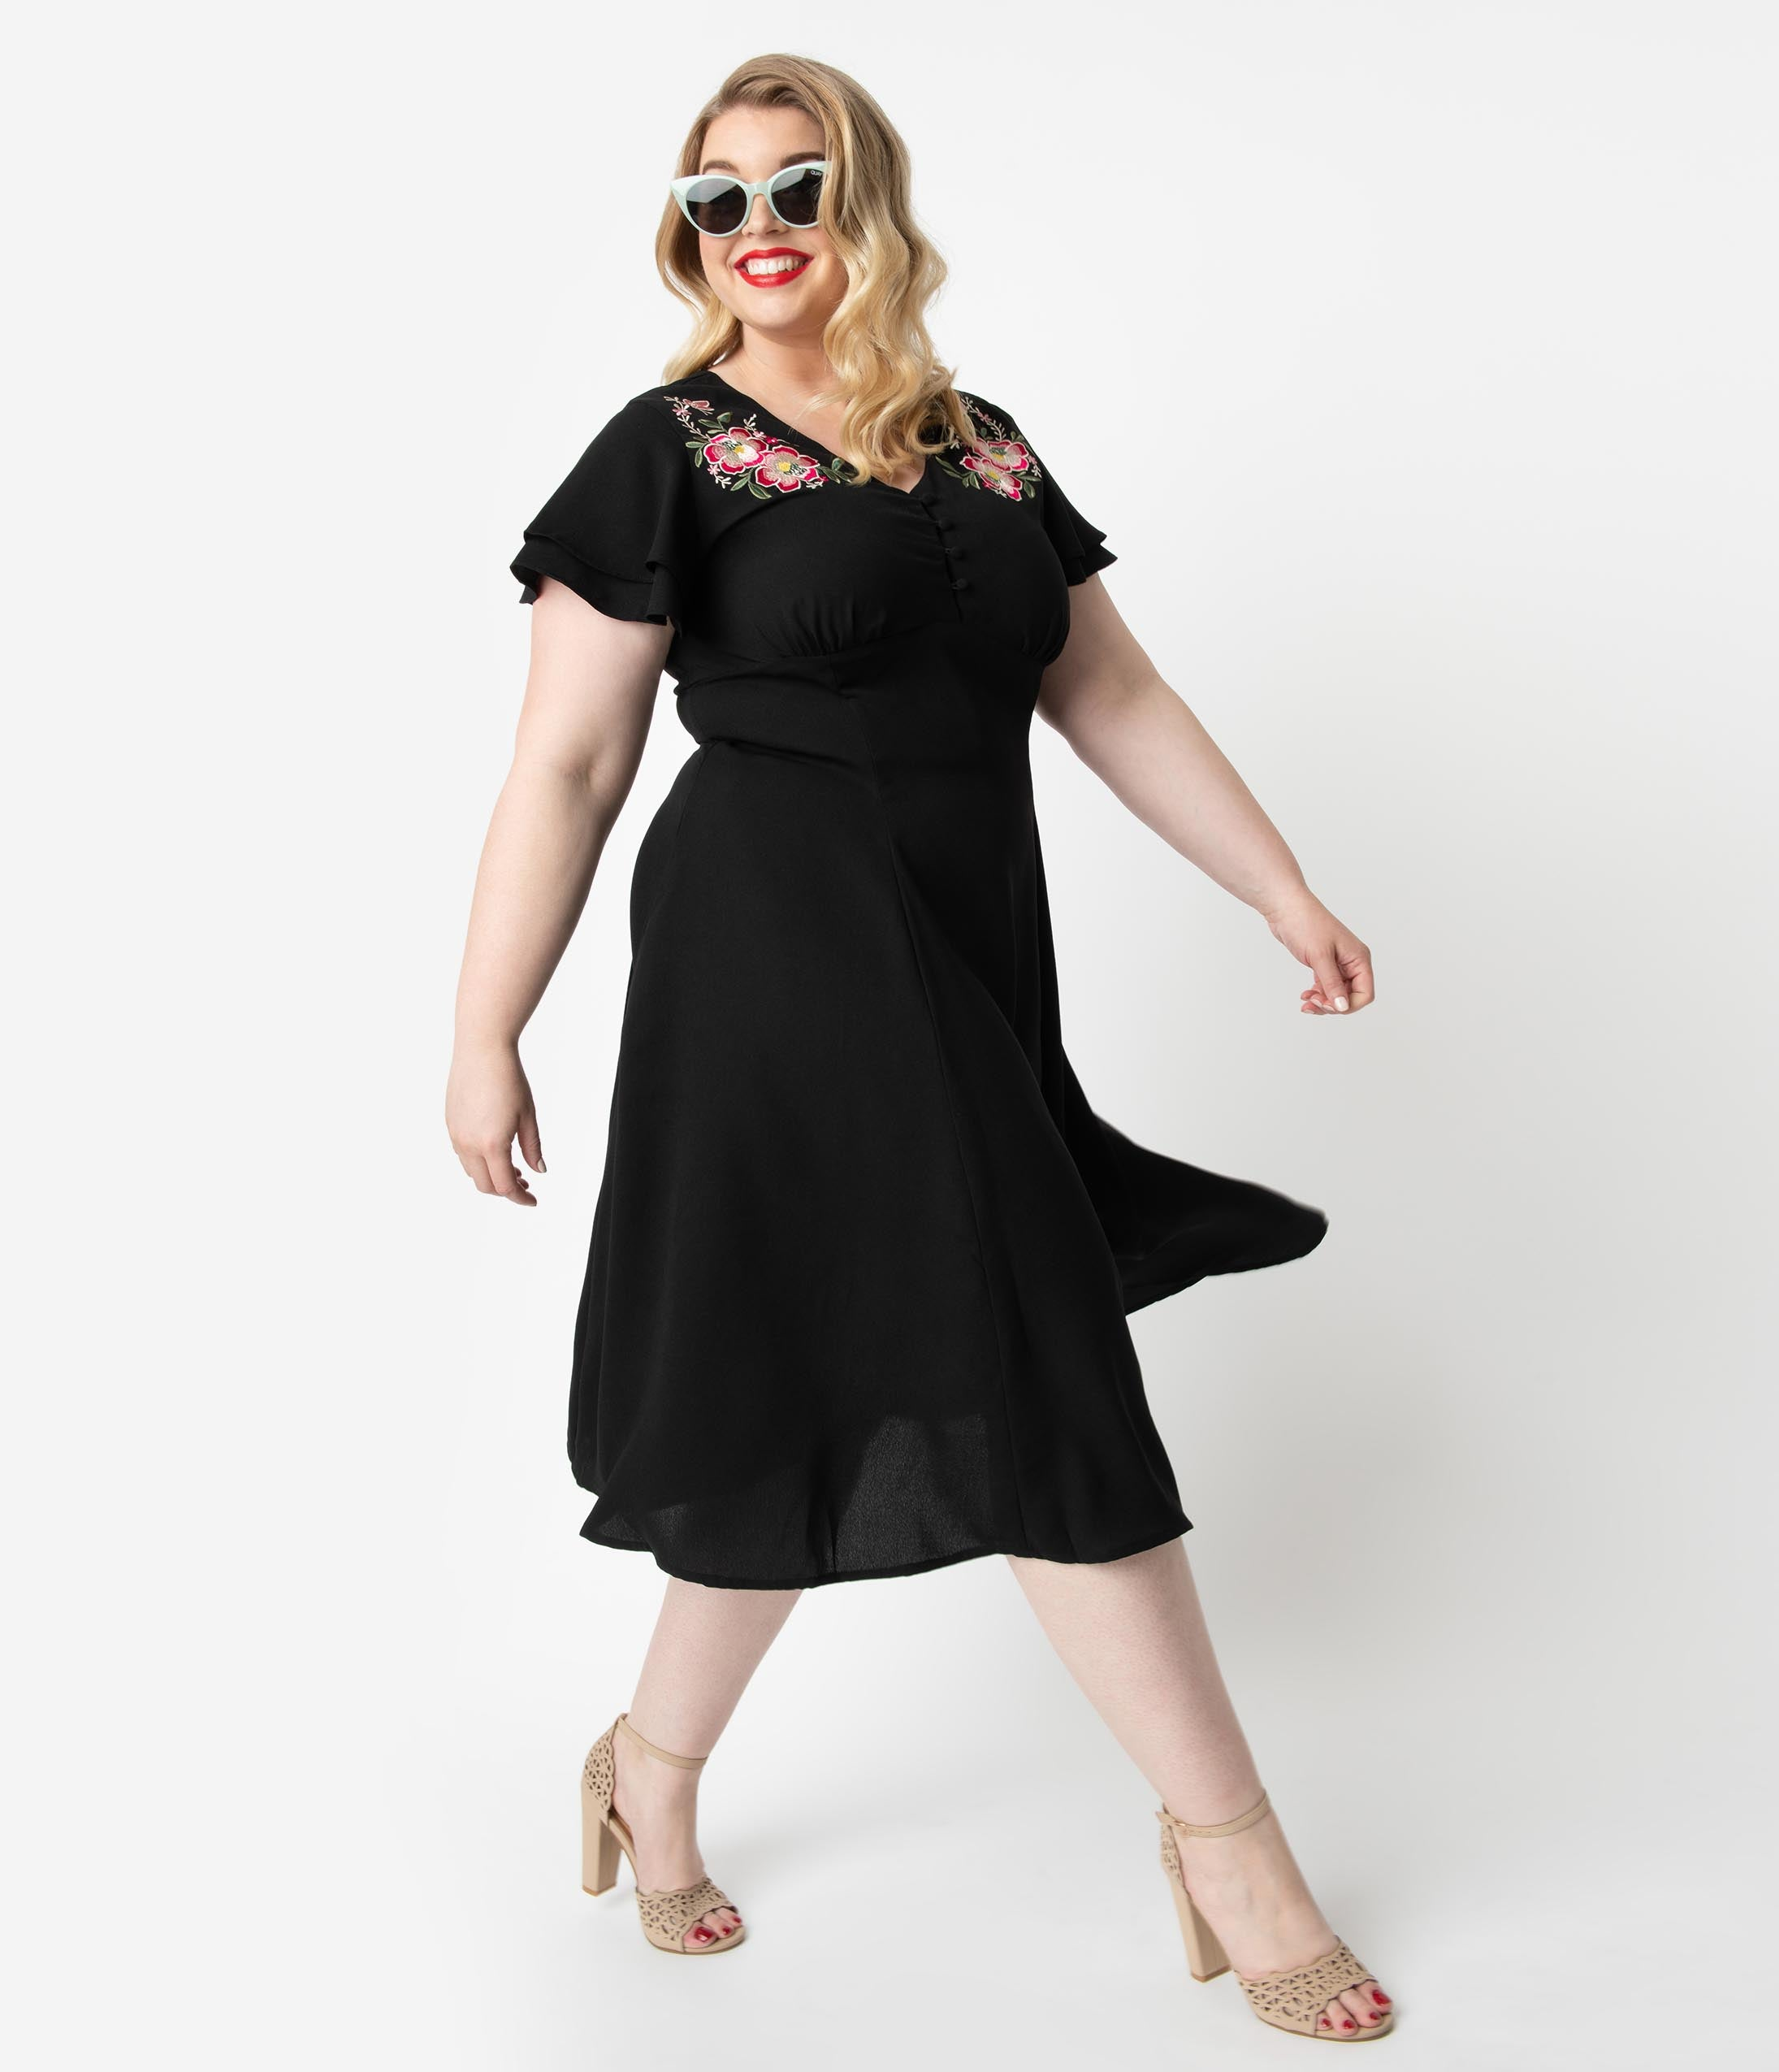 1950s Plus Size Dresses, Swing Dresses Plus Size 1940S Style Black  Pink Floral Embroidery Irena Swing Dress $68.00 AT vintagedancer.com